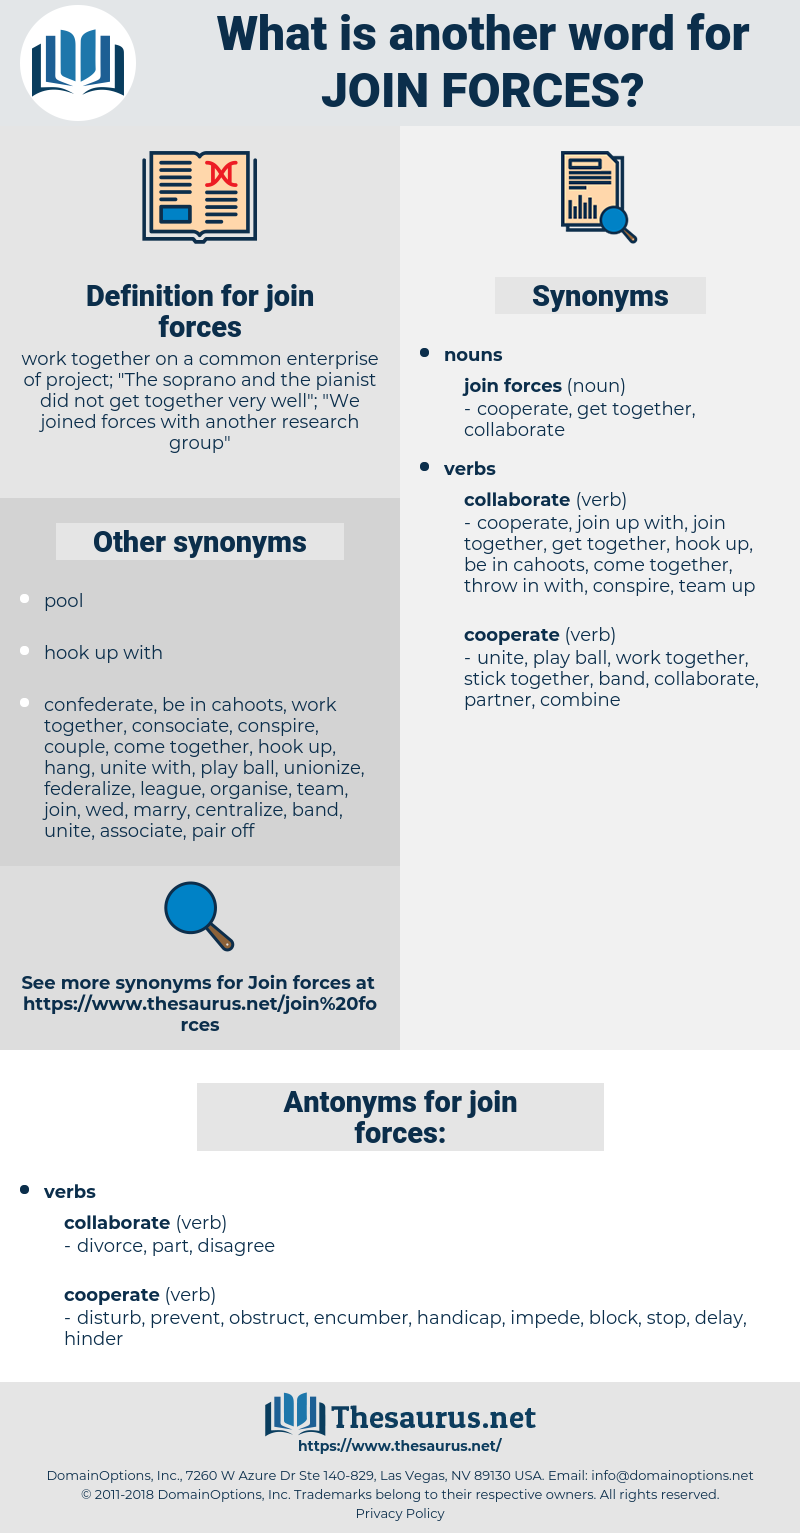 join forces, synonym join forces, another word for join forces, words like join forces, thesaurus join forces